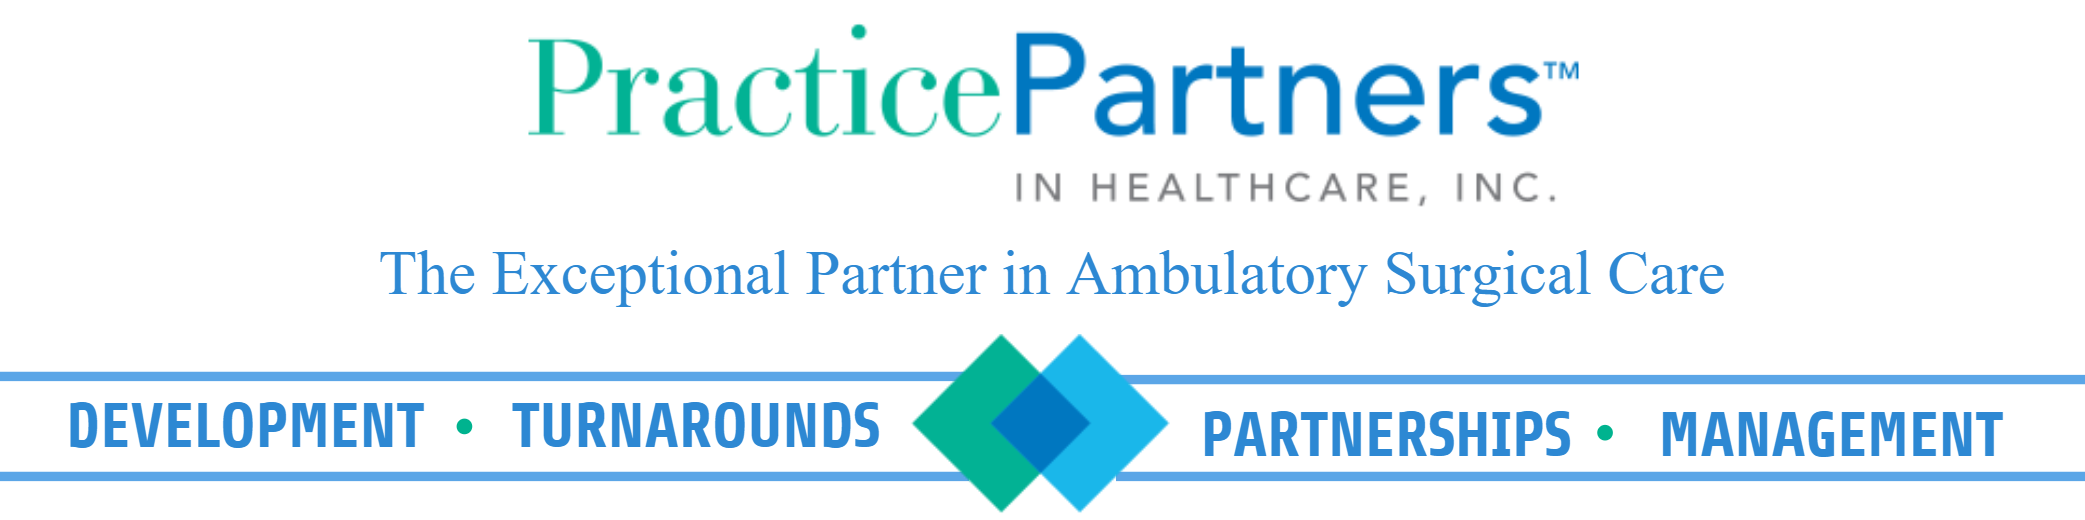 Practice Partners in Healthcare December 2018 E-Newsletter